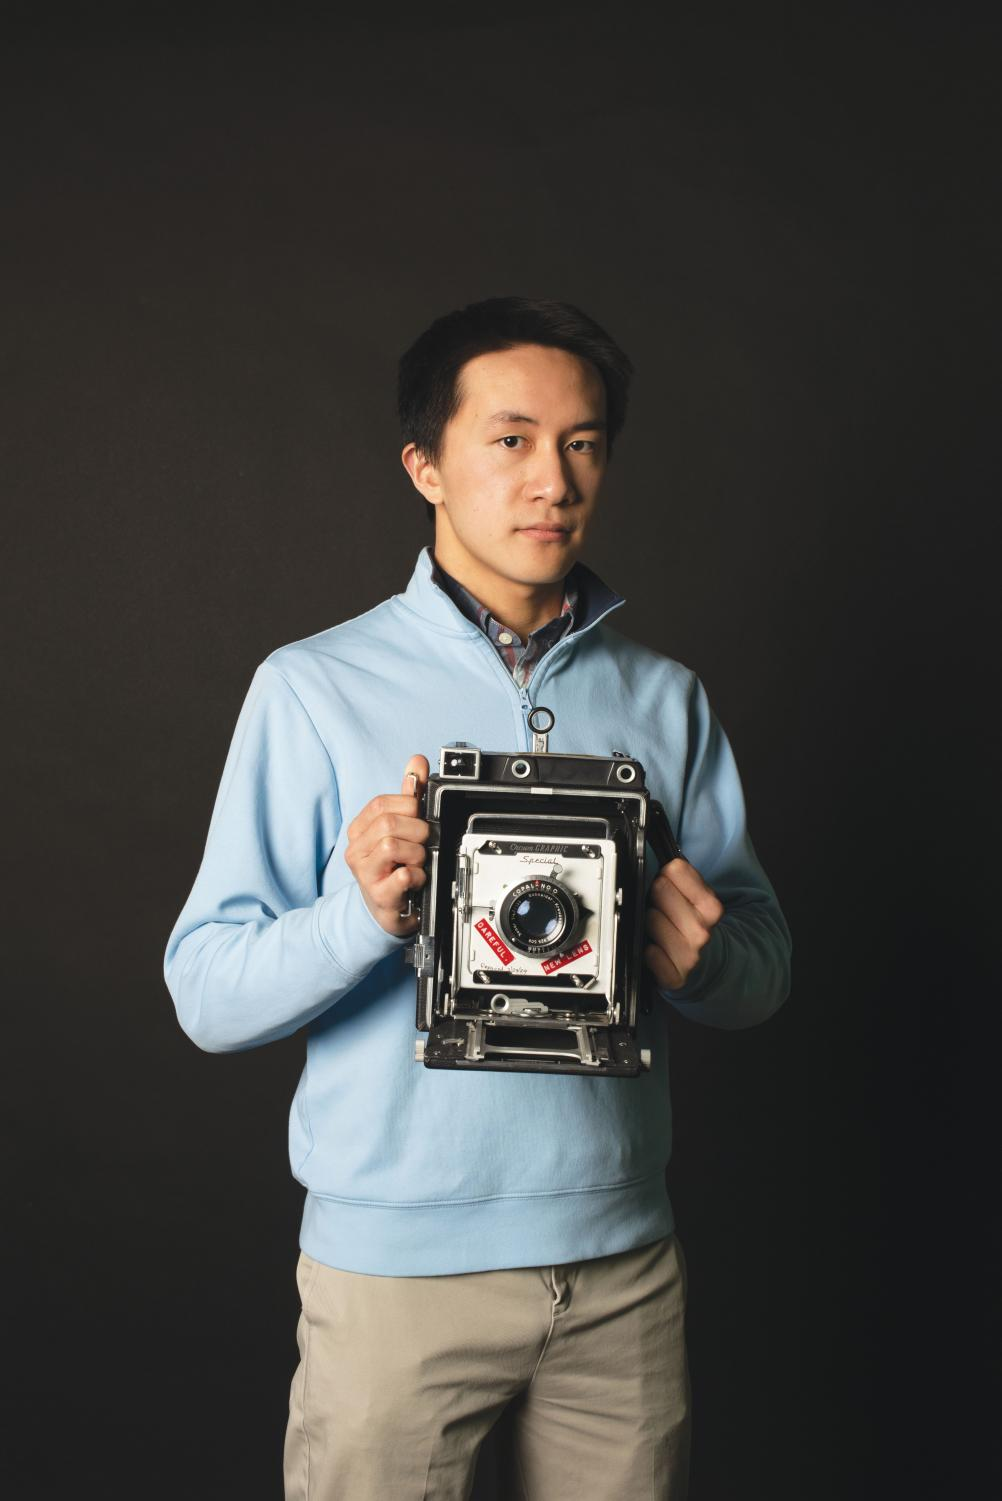 Edward Guo '19 holds a 4x5 film camera, which was first invented in the 19th century.